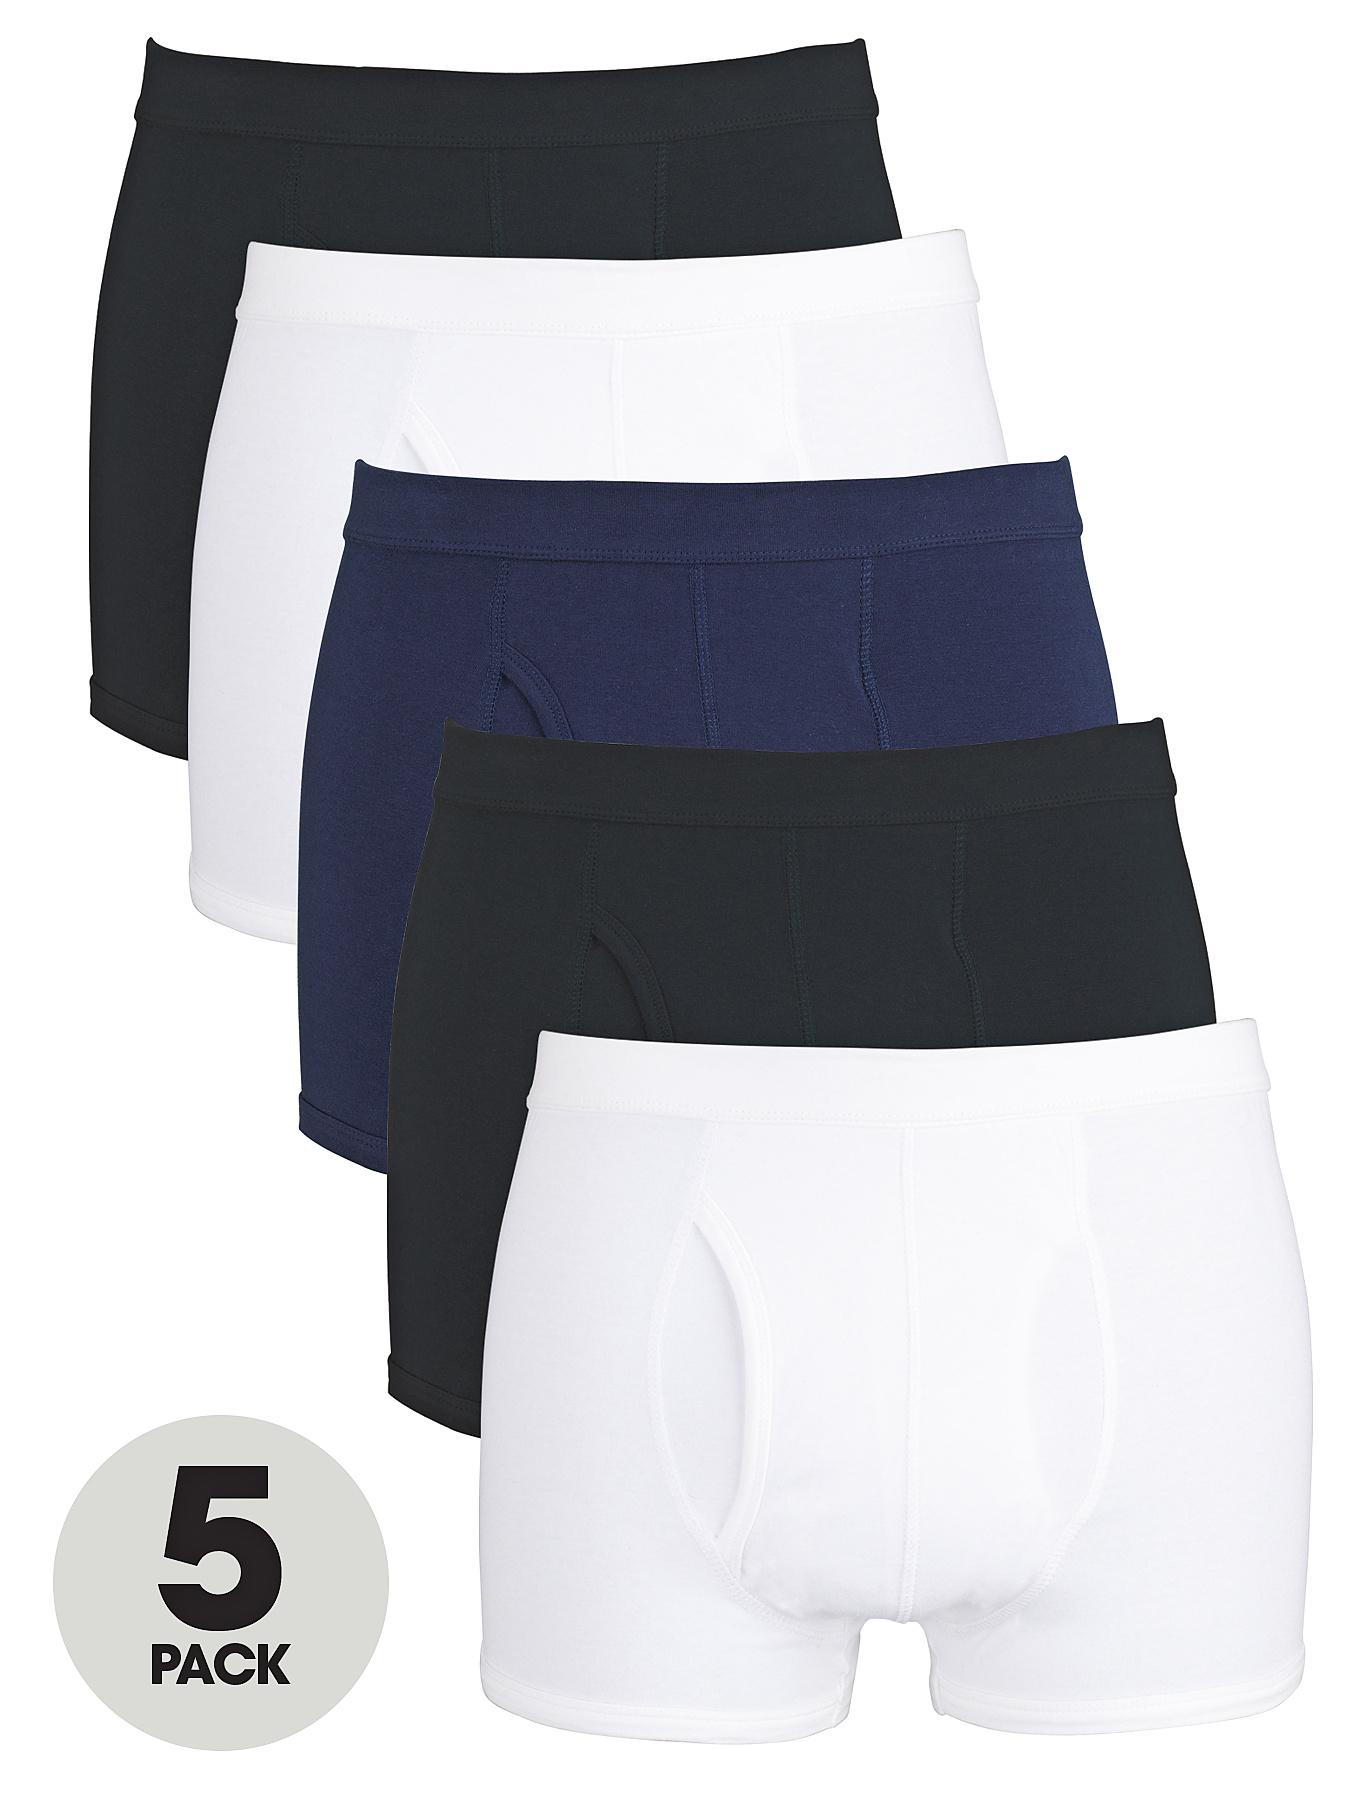 Mens Trunks (5 Pack)